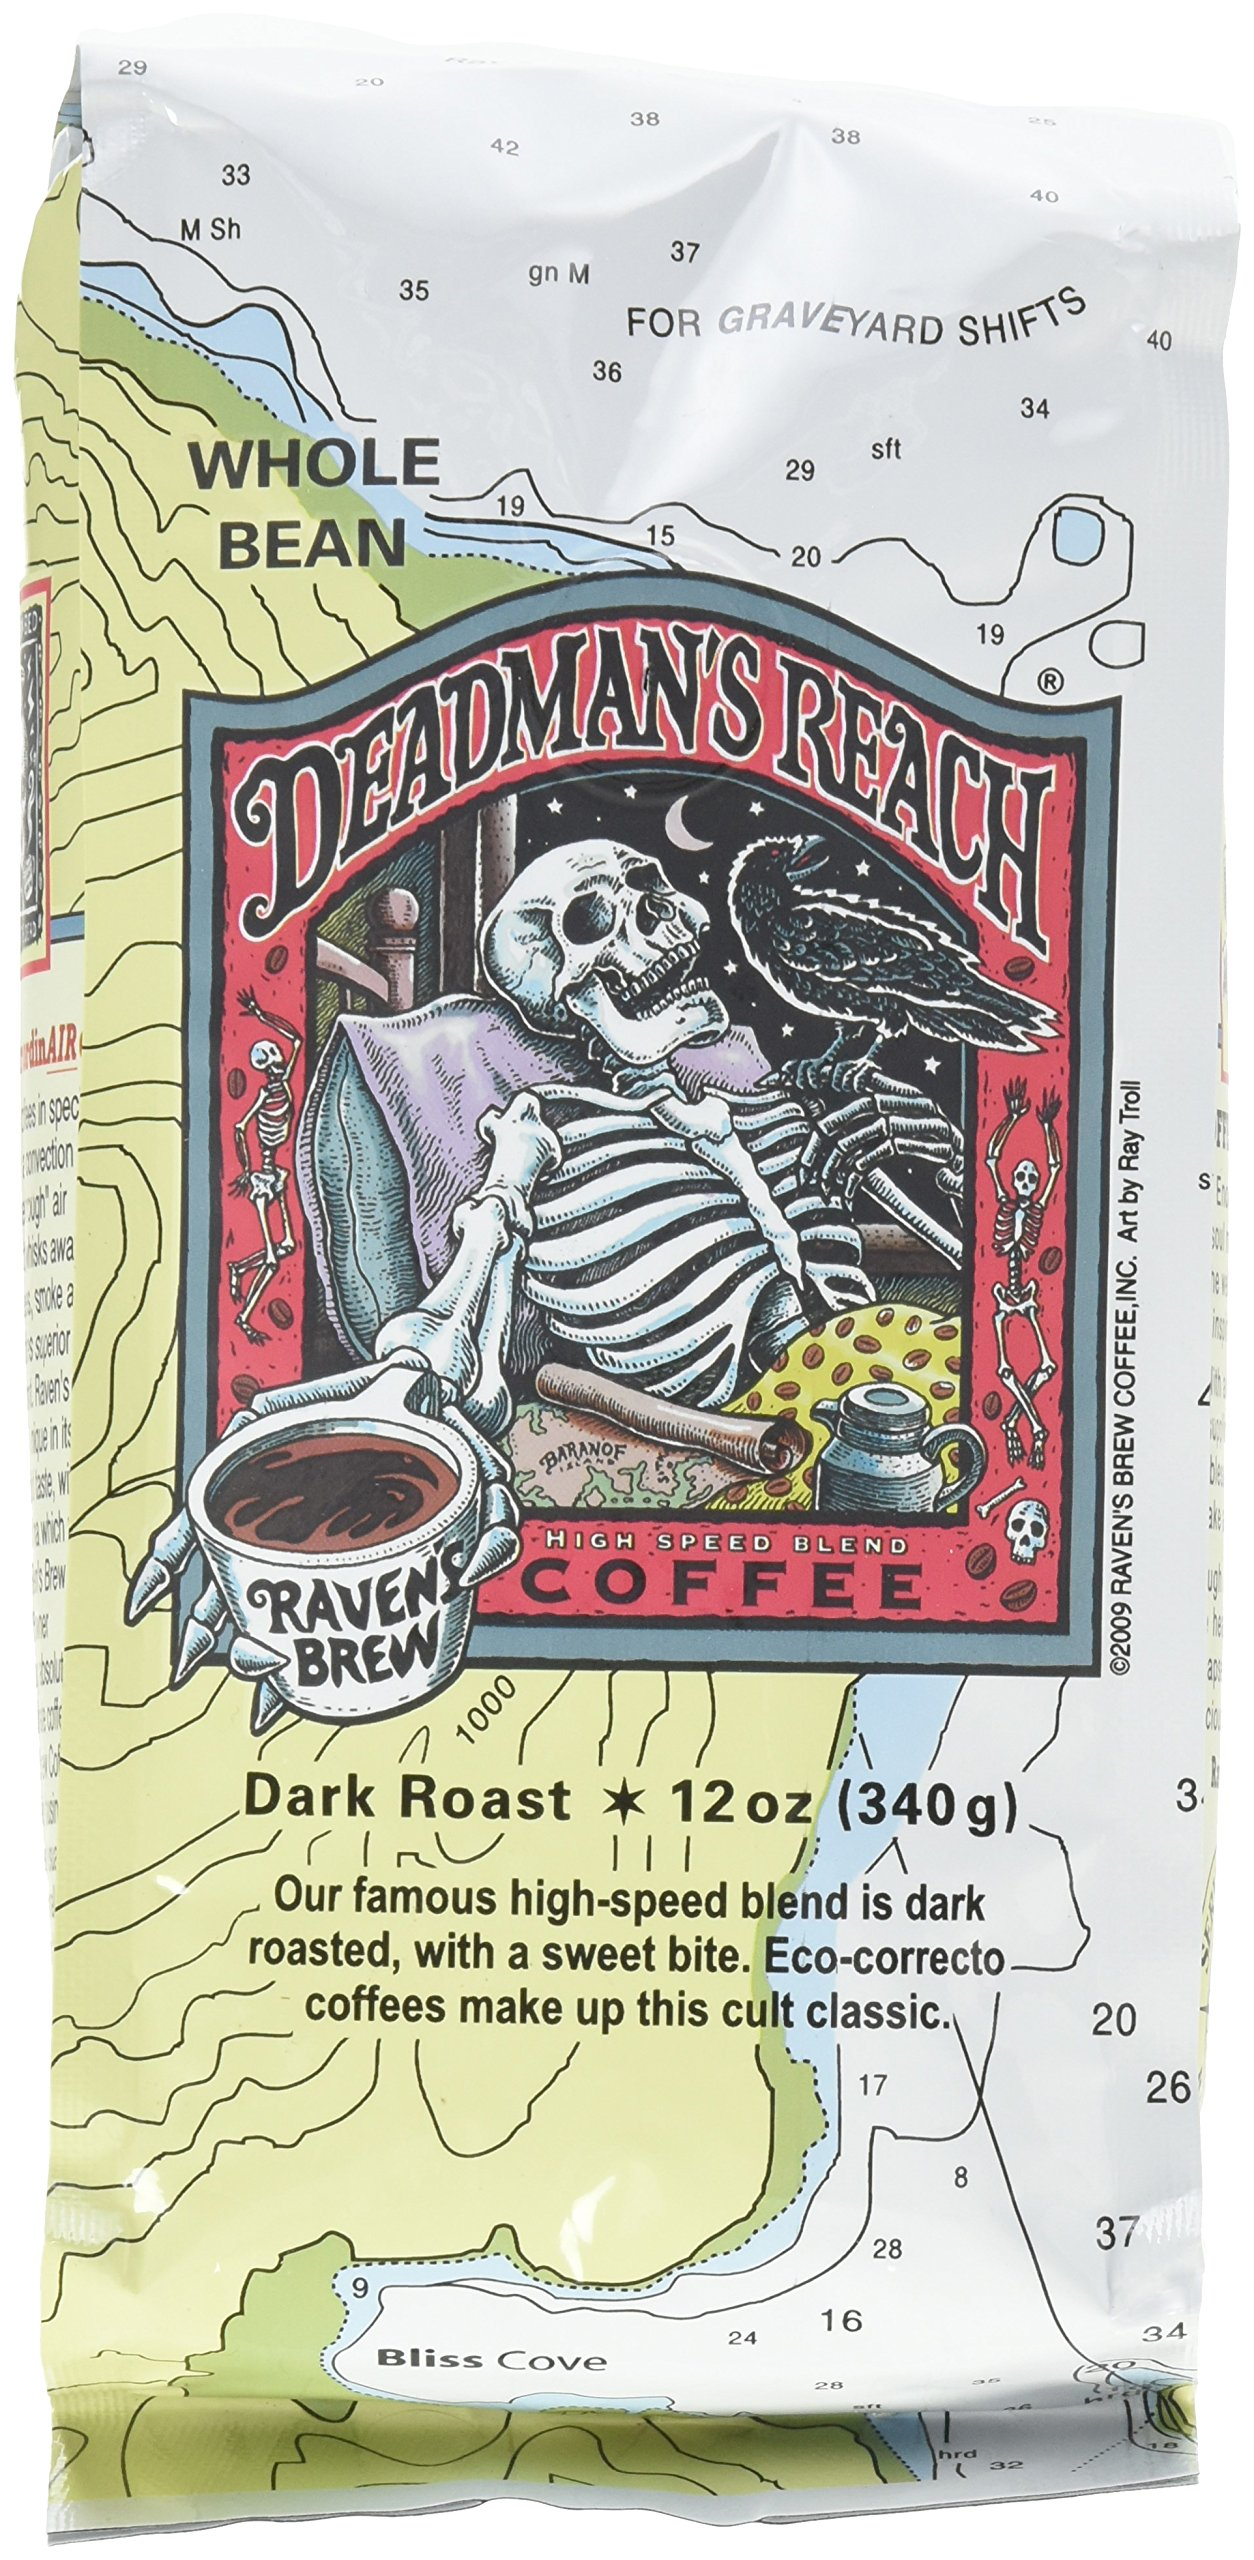 Raven's Brew Coffee Deadman's Reach Whole Bean Coffee, 12 oz by Raven's Brew Coffee